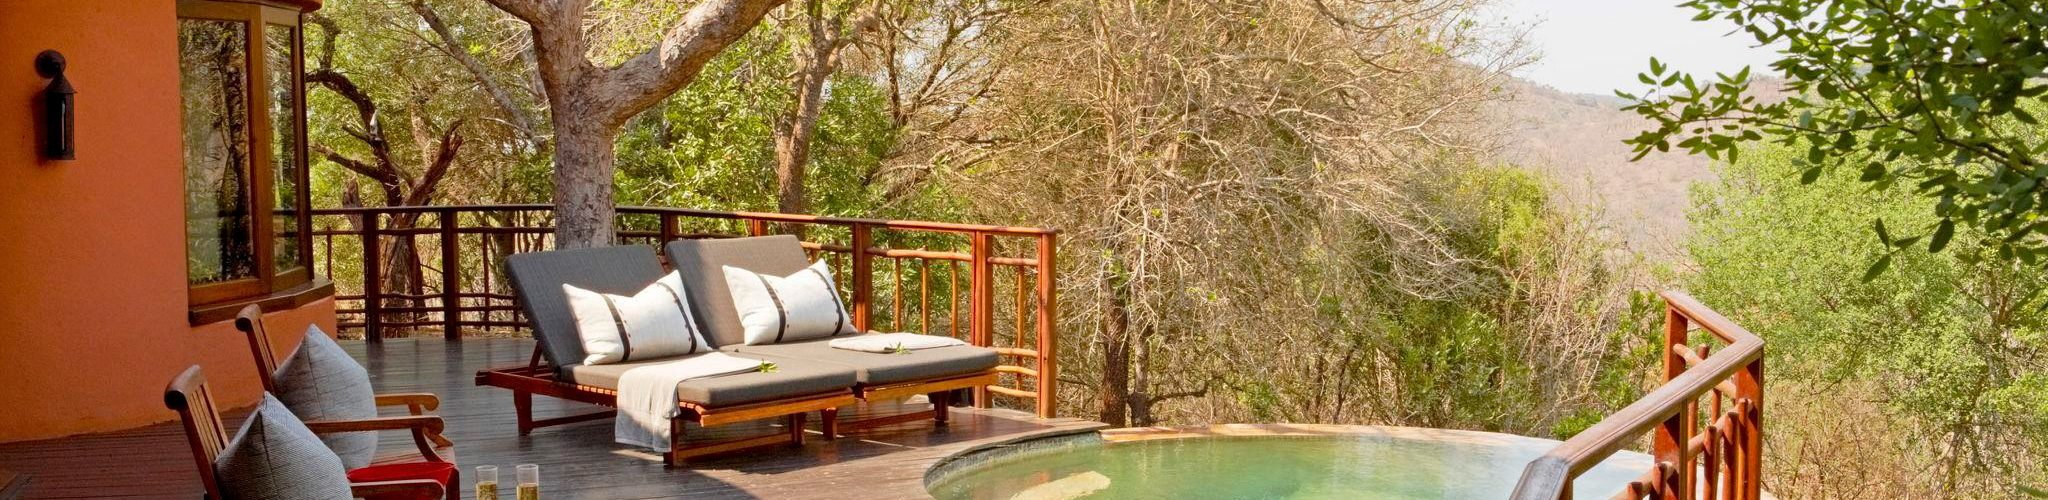 thanda-safari-lodge-private-deck-and-pool